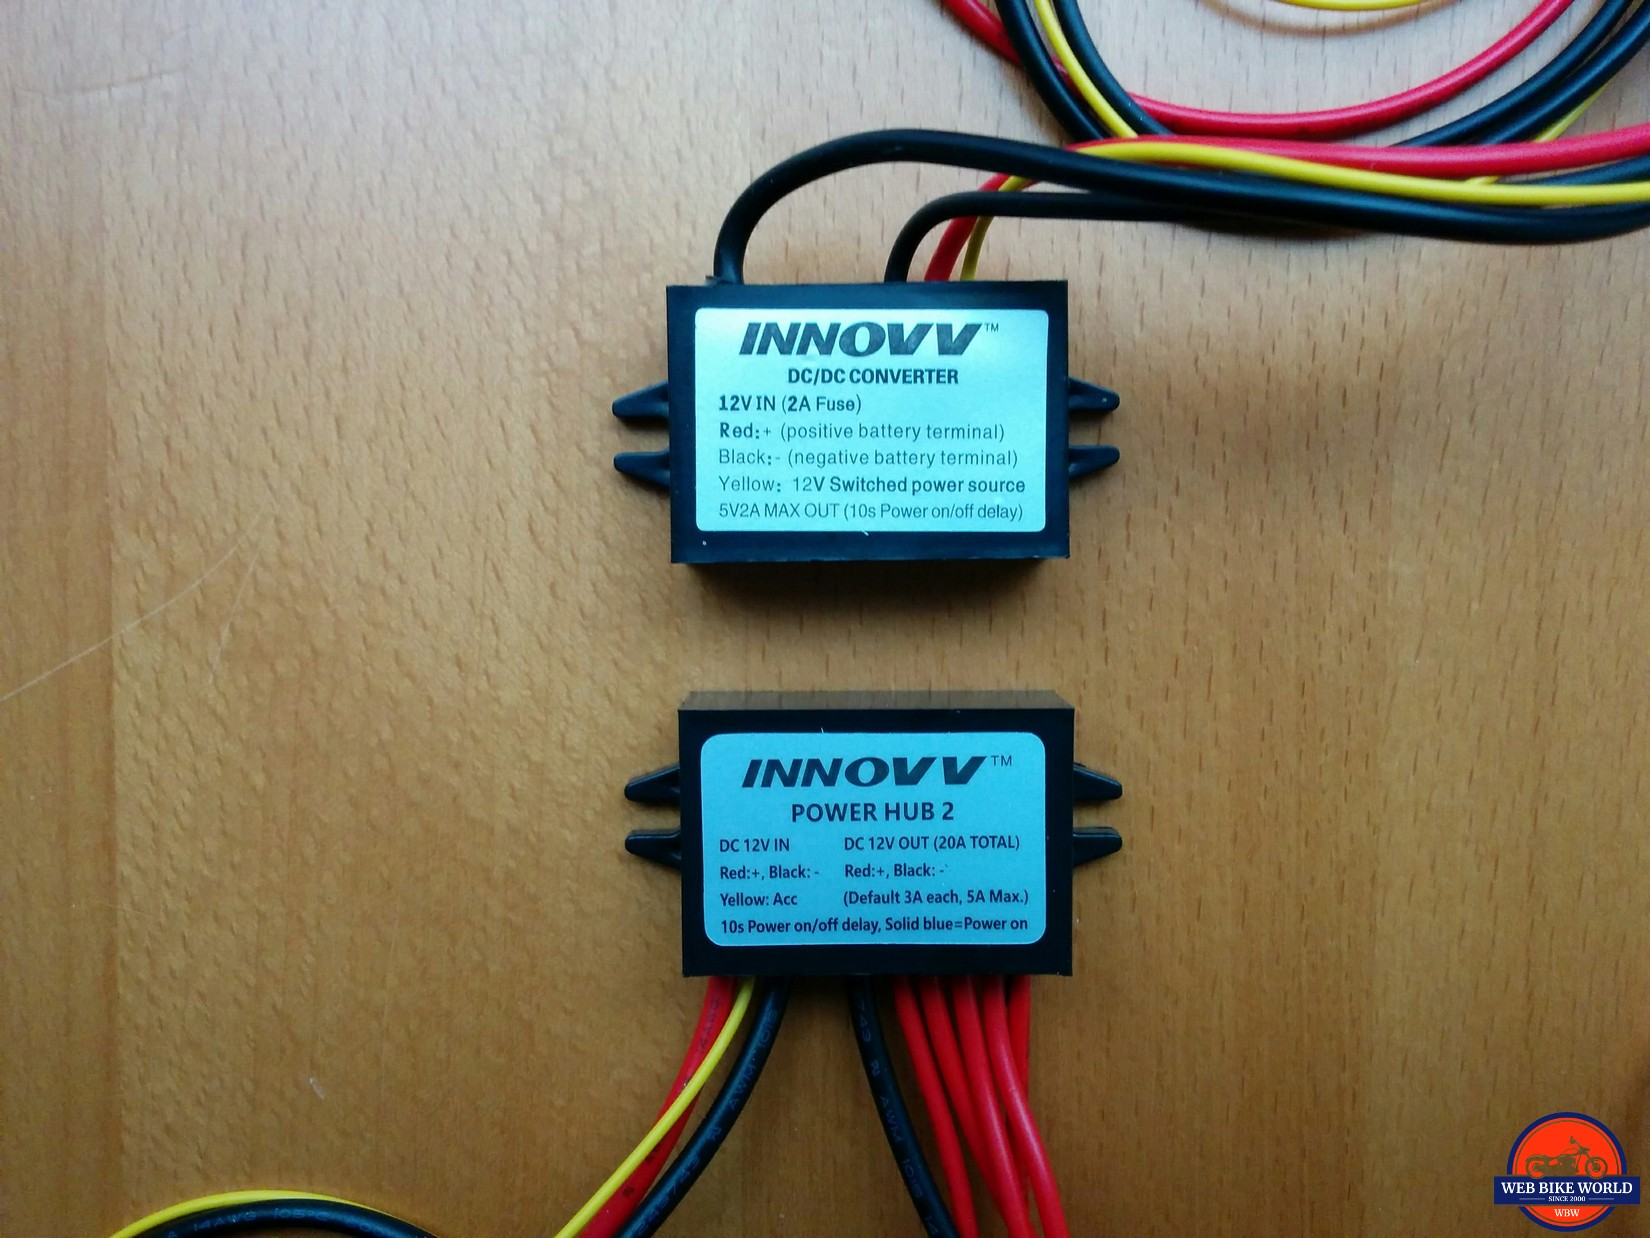 NNOVV Power Hub 2 and K2 Power Supply